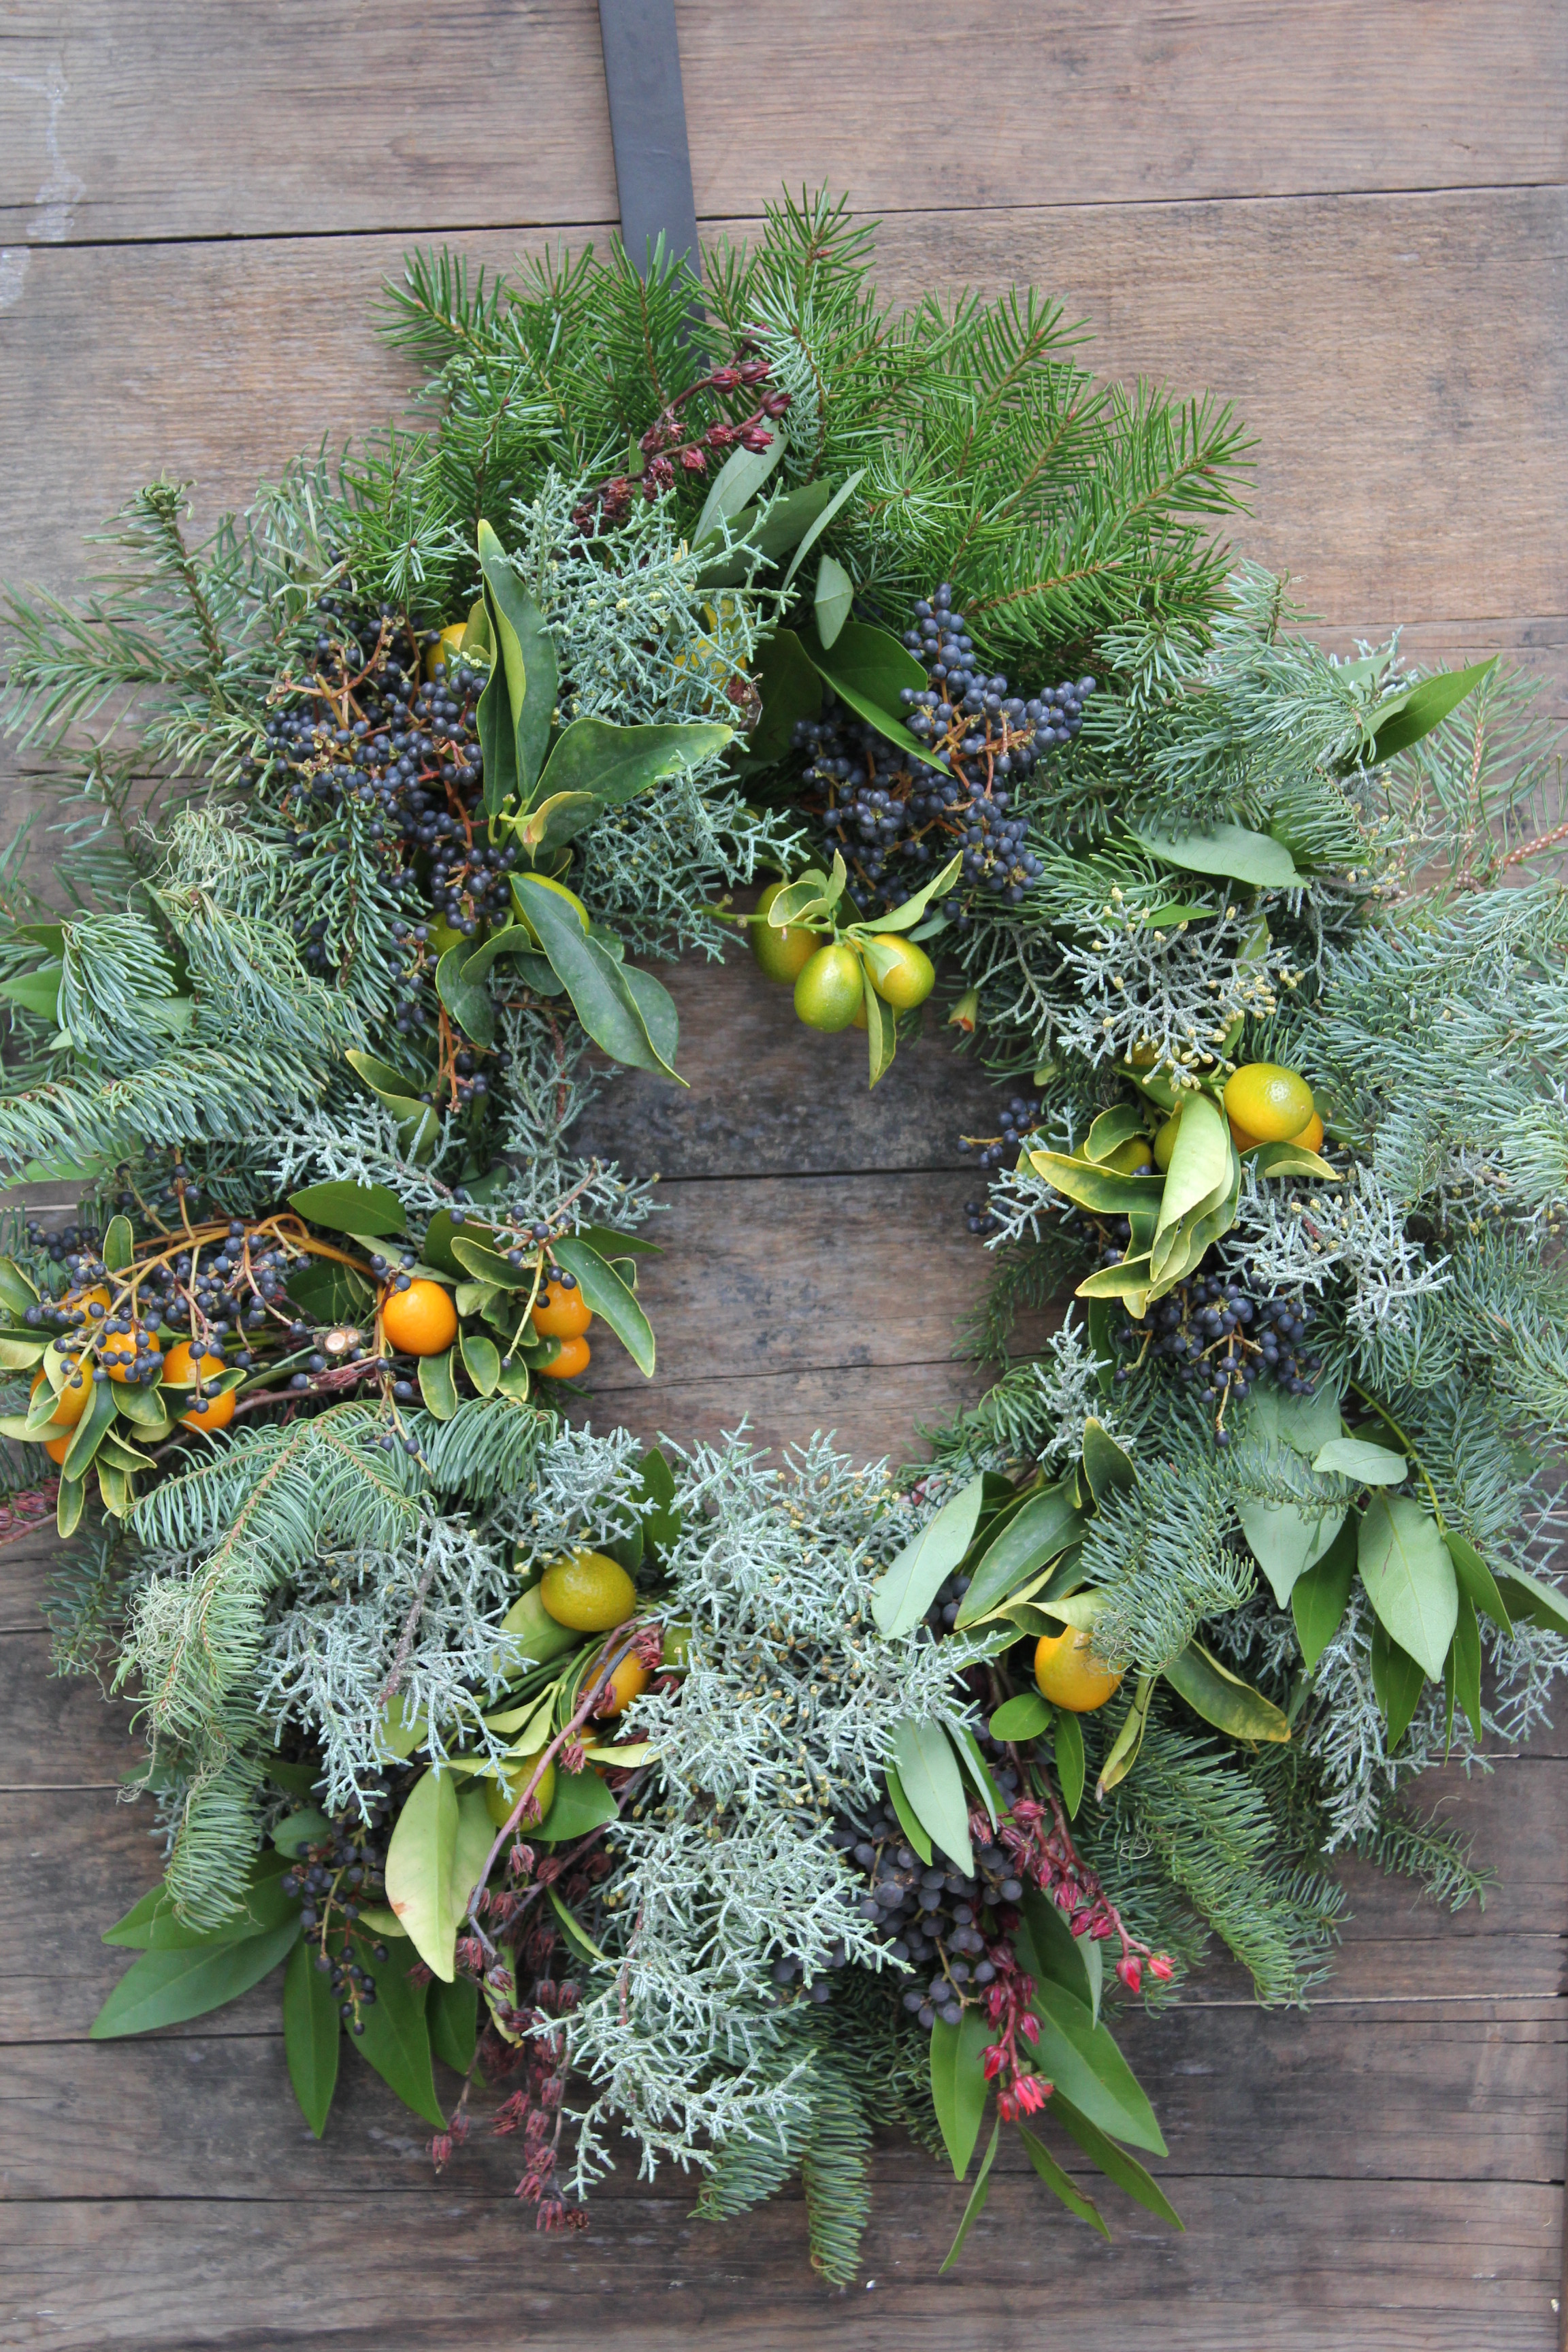 All local greens used to create a deliciously fragrant wreath.